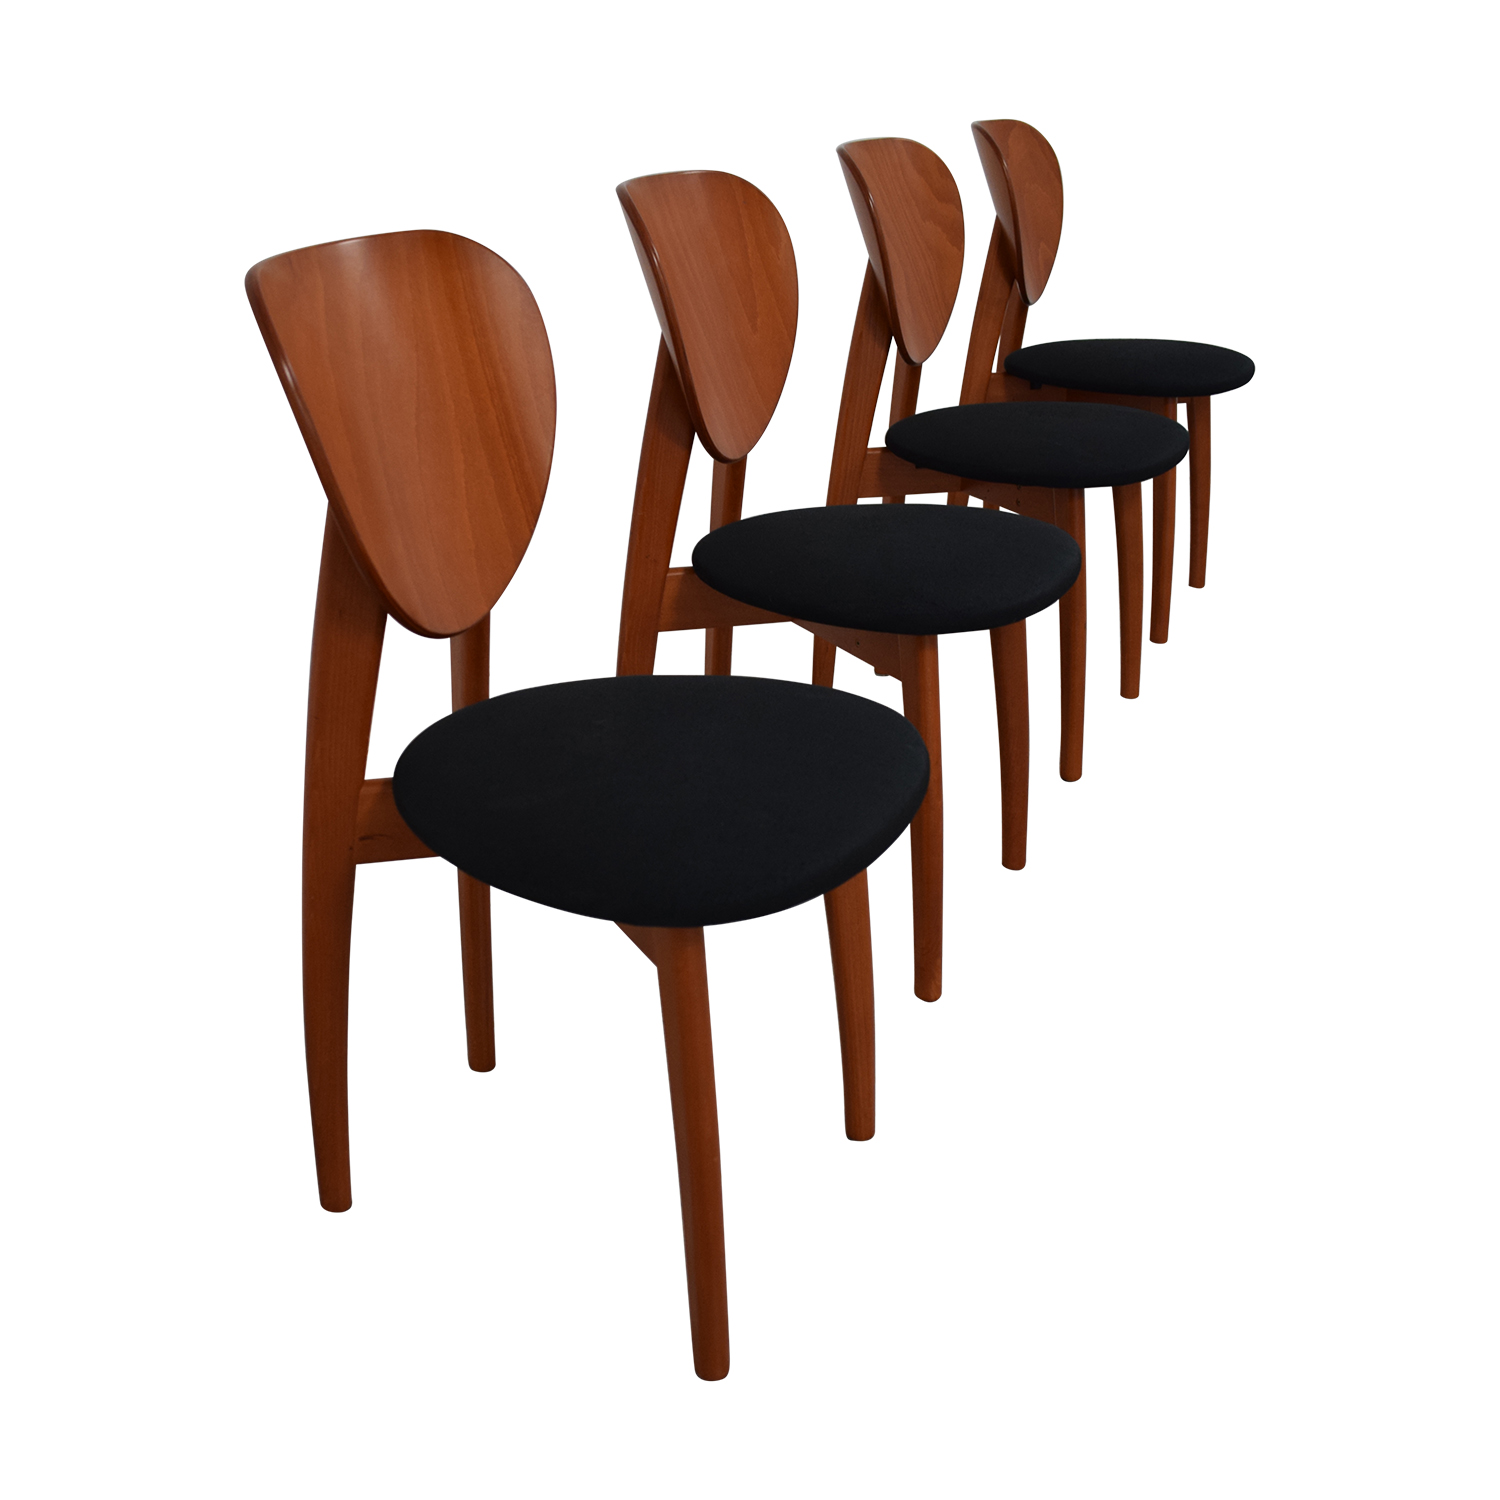 73 Off Calligaris Calligaris Dining Chairs Chairs